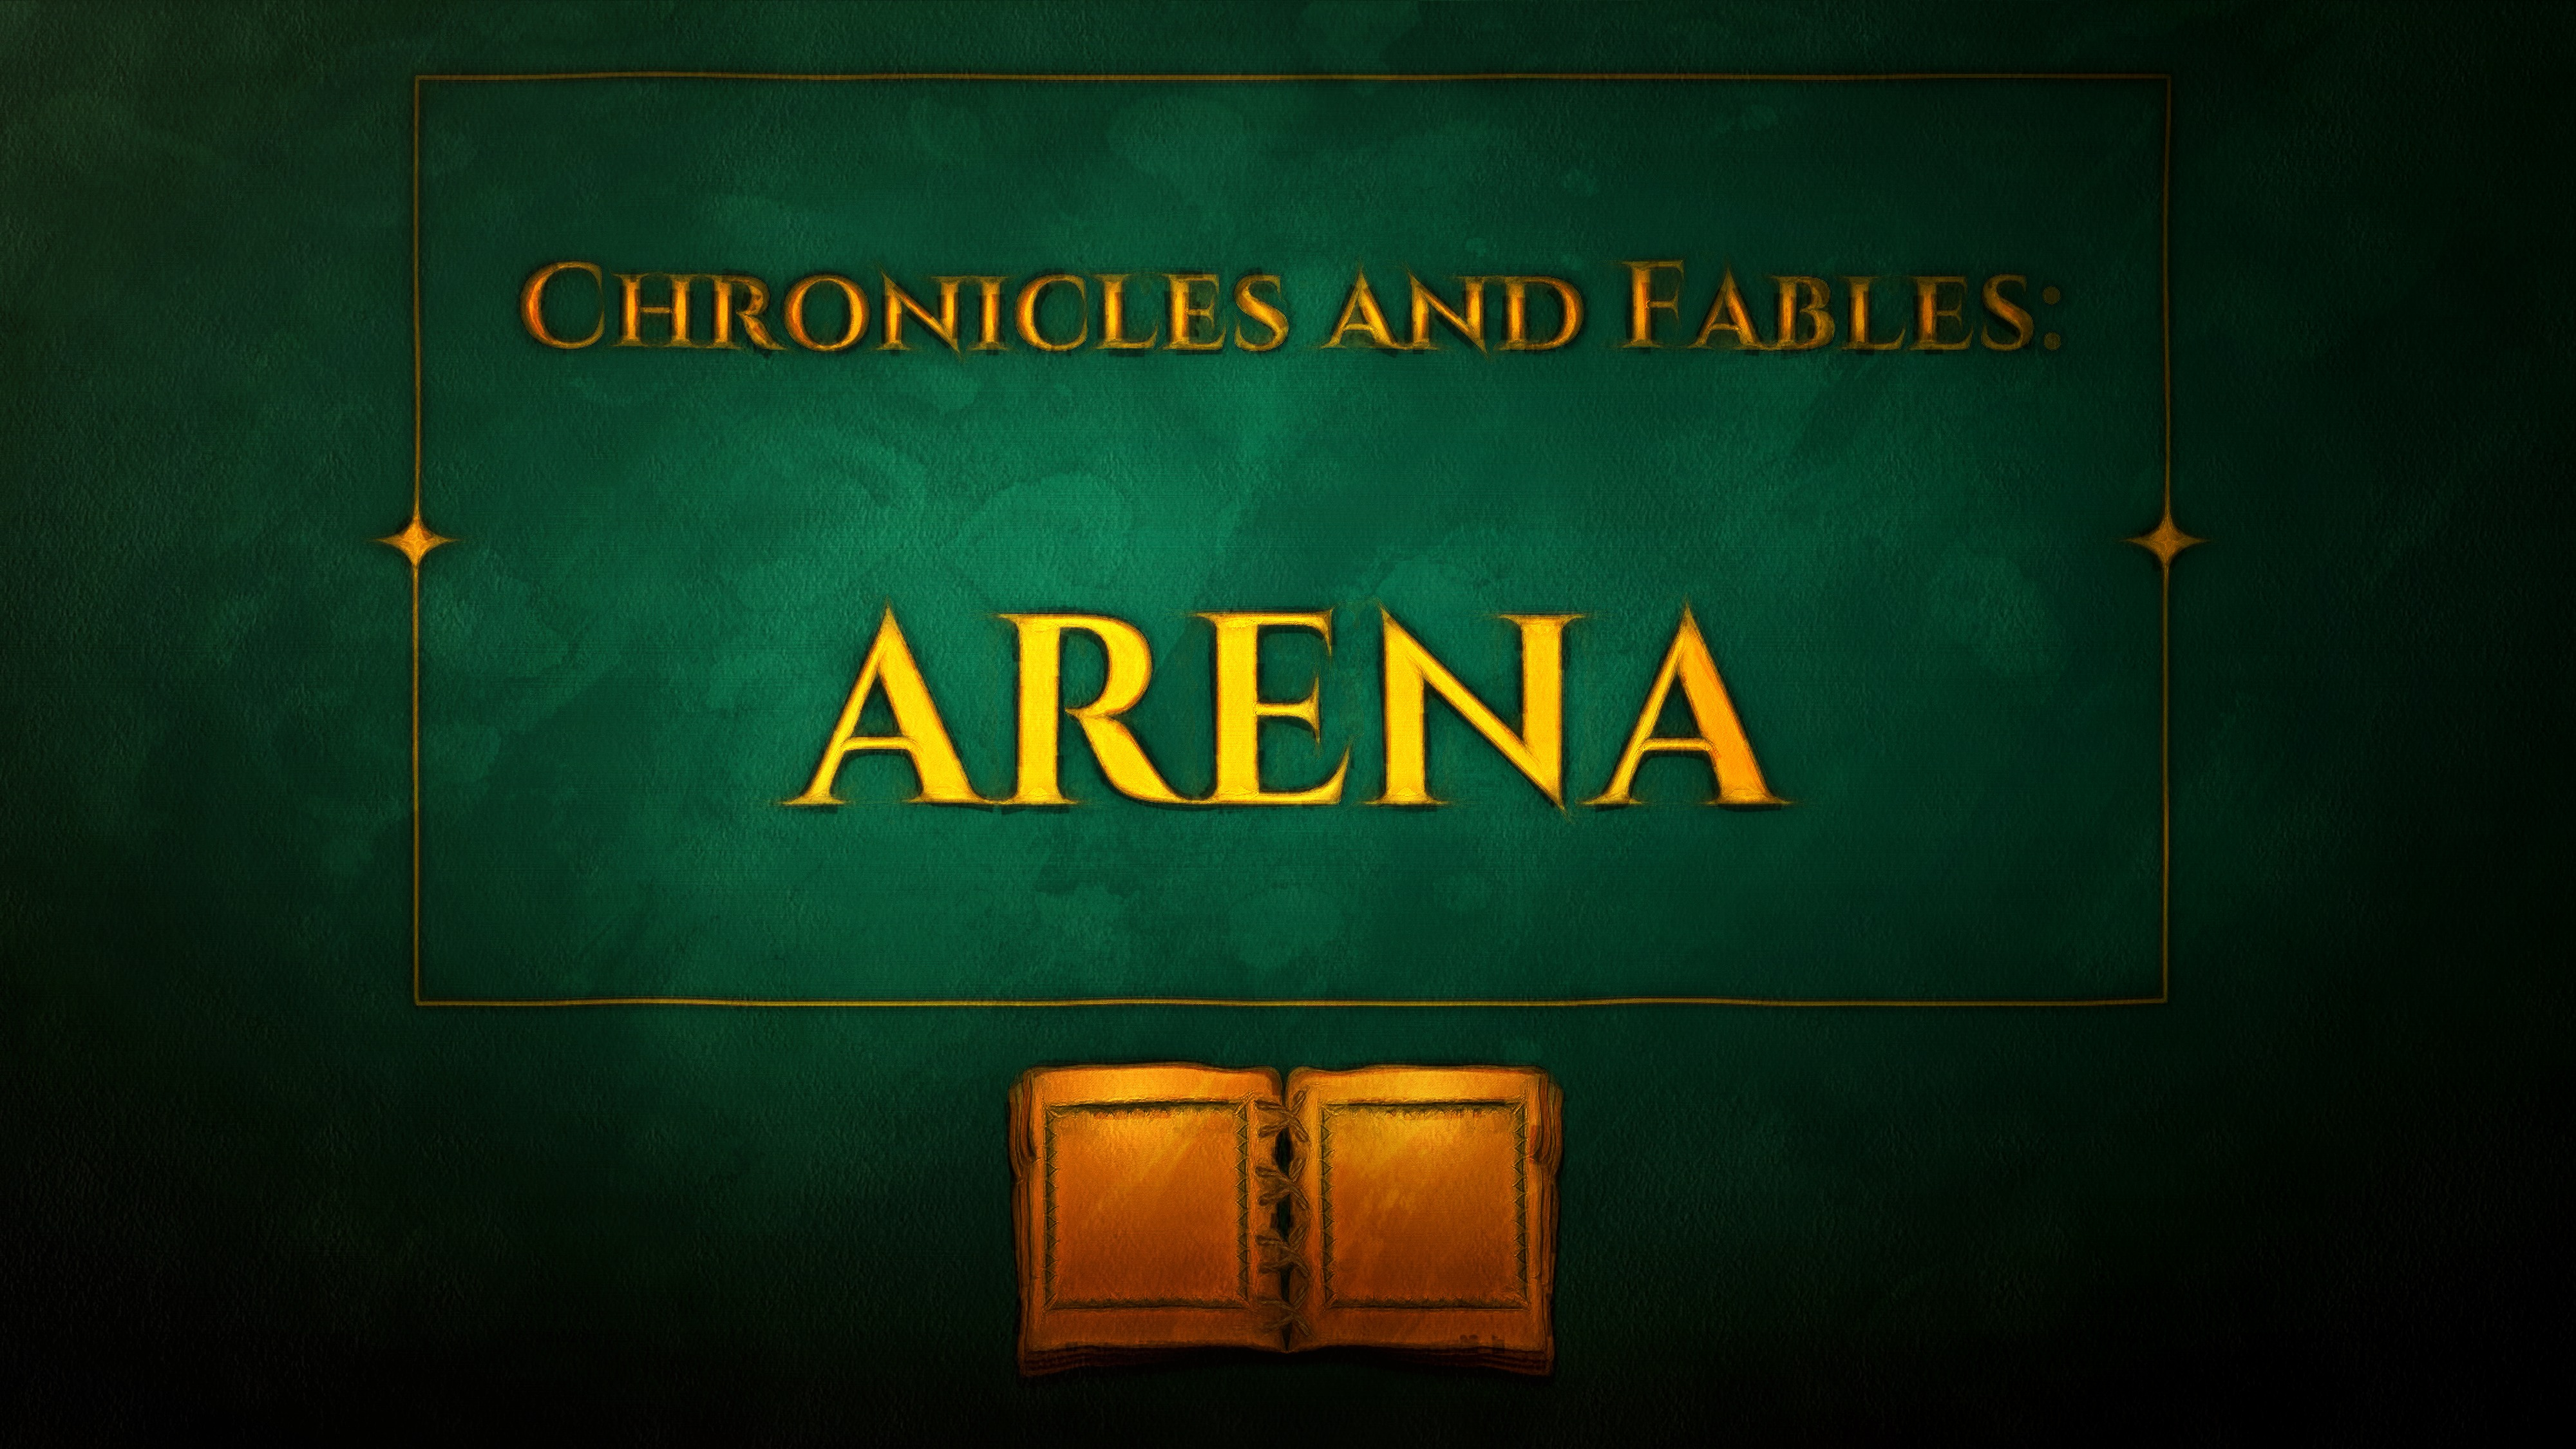 Chronicles and Fables: ARENA